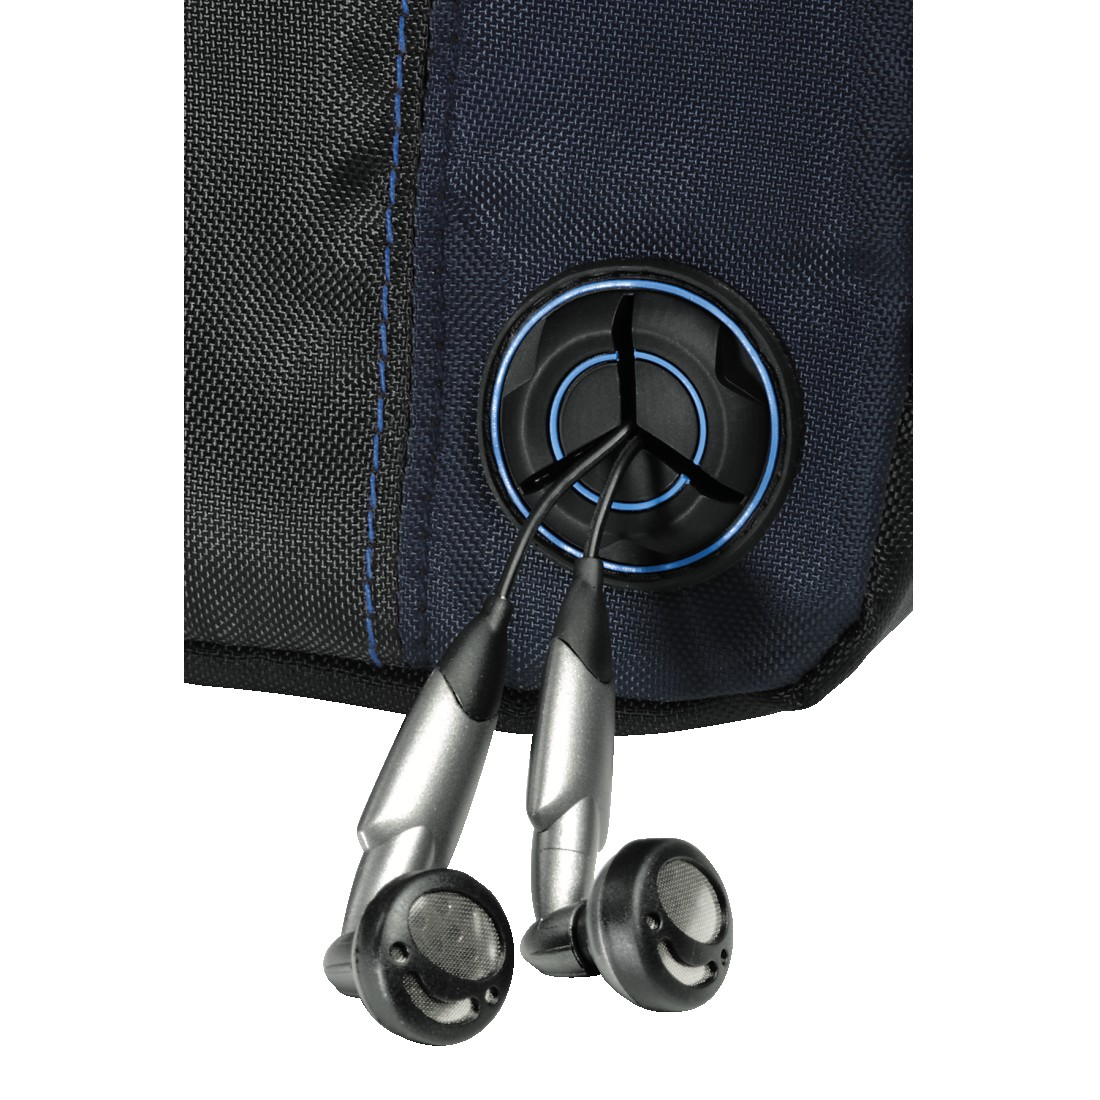 abx2 High-Res Image 2 - Hama, CD Player Bag for Discman and 3 CDs, black/blue